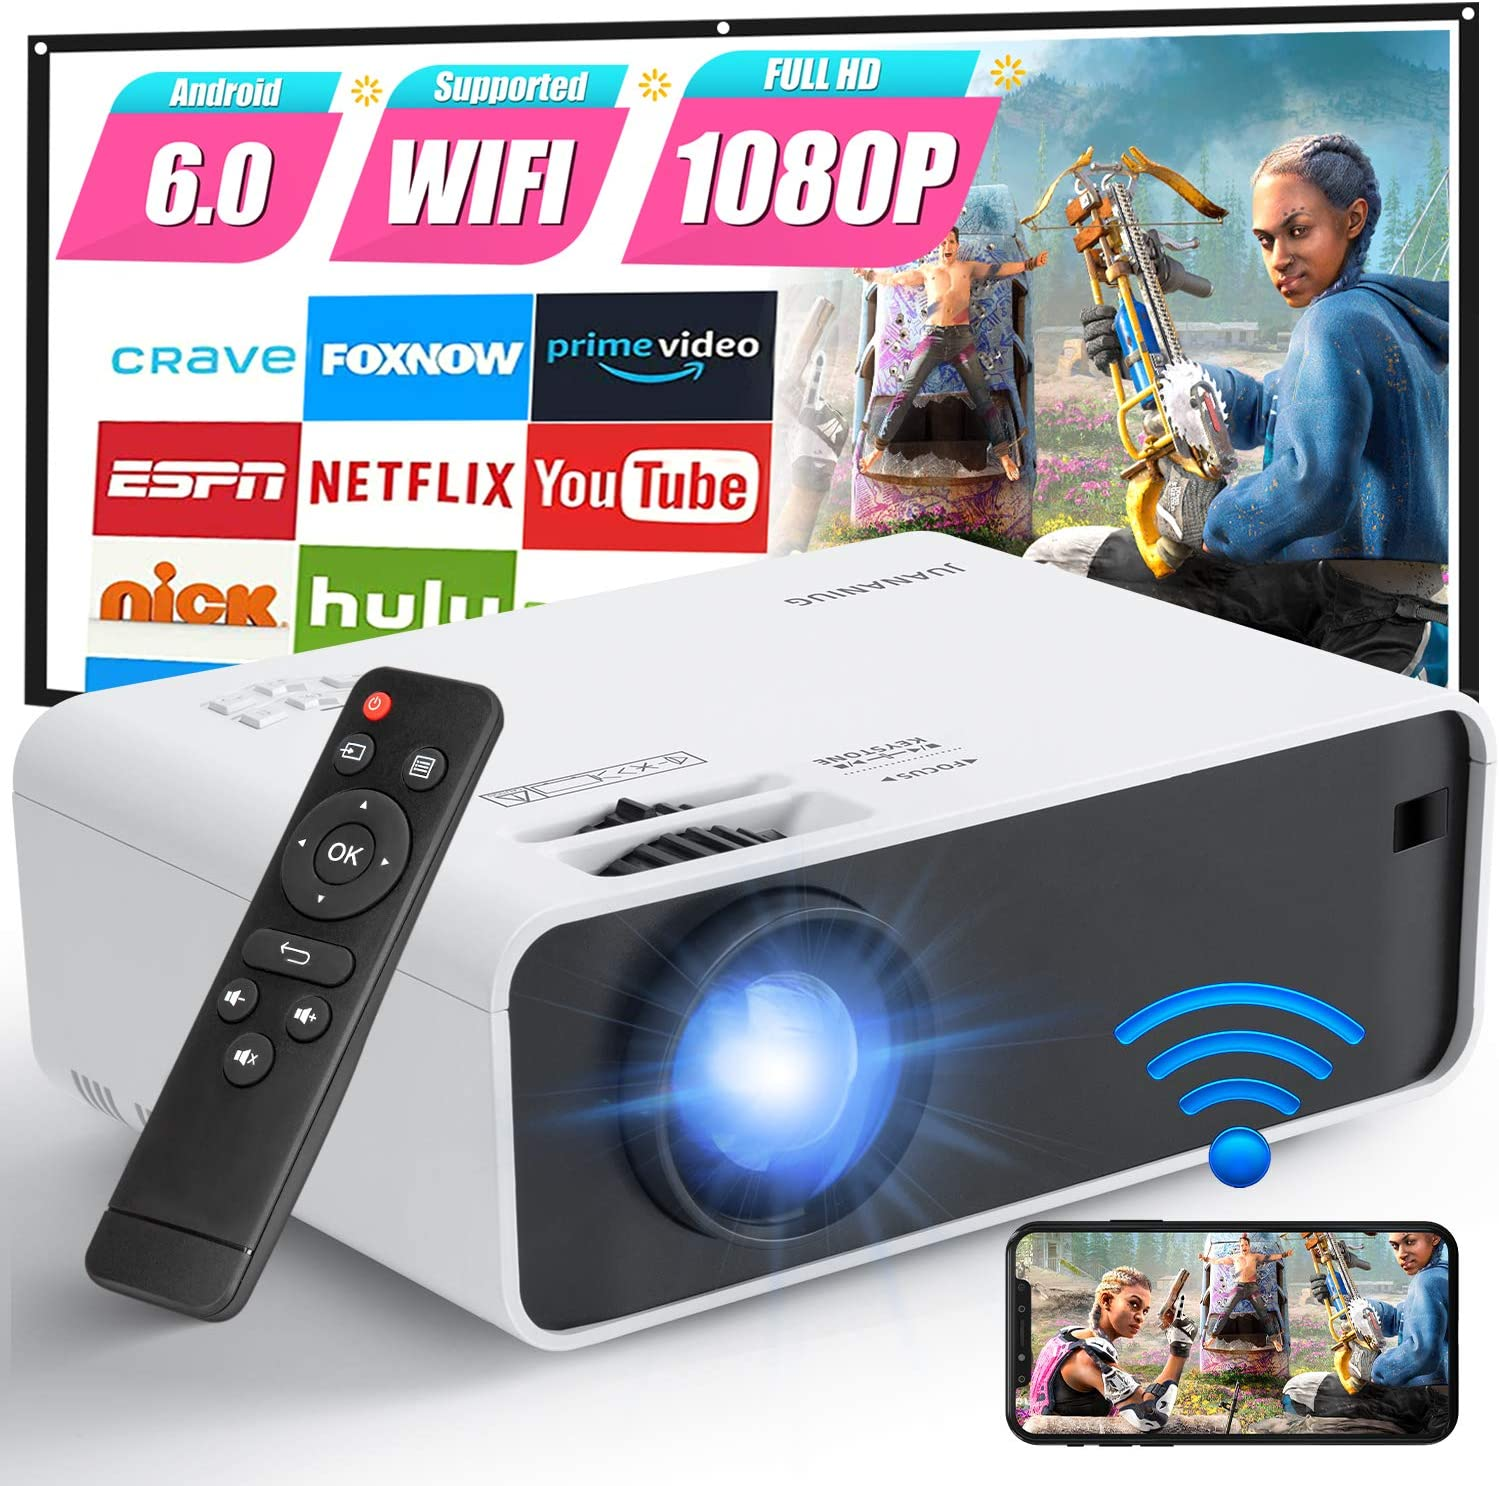 Mini Projector, Portable WiFi Projector with Synchronize Smartphone Screen, Home Theater Projector Built-in Speaker 1080P Supported, Compatible with iPhone,Android,TV Stick,PS4,HDMI,USB,TF,VGA,AUX,AV